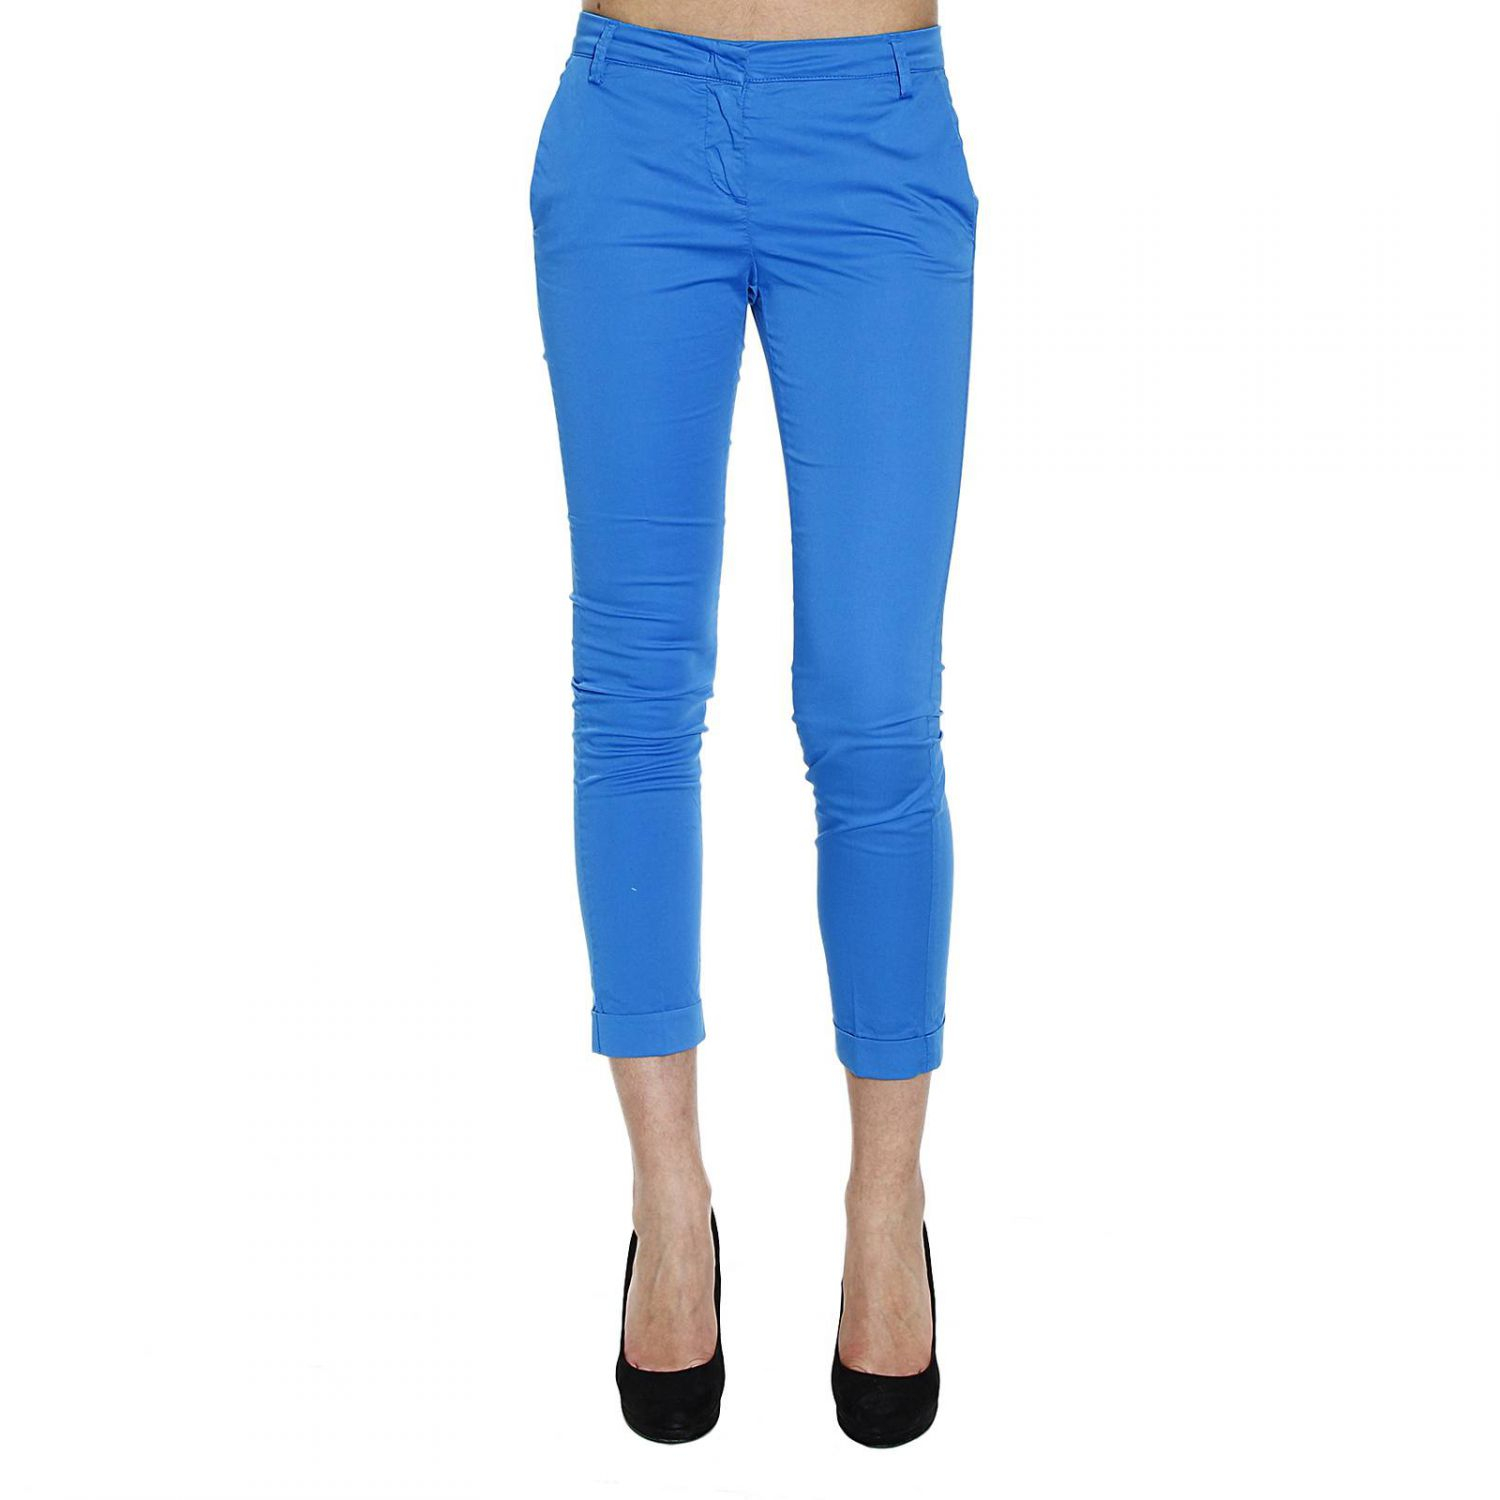 Manila grace Trouser Pants Capri Satin in Blue | Lyst